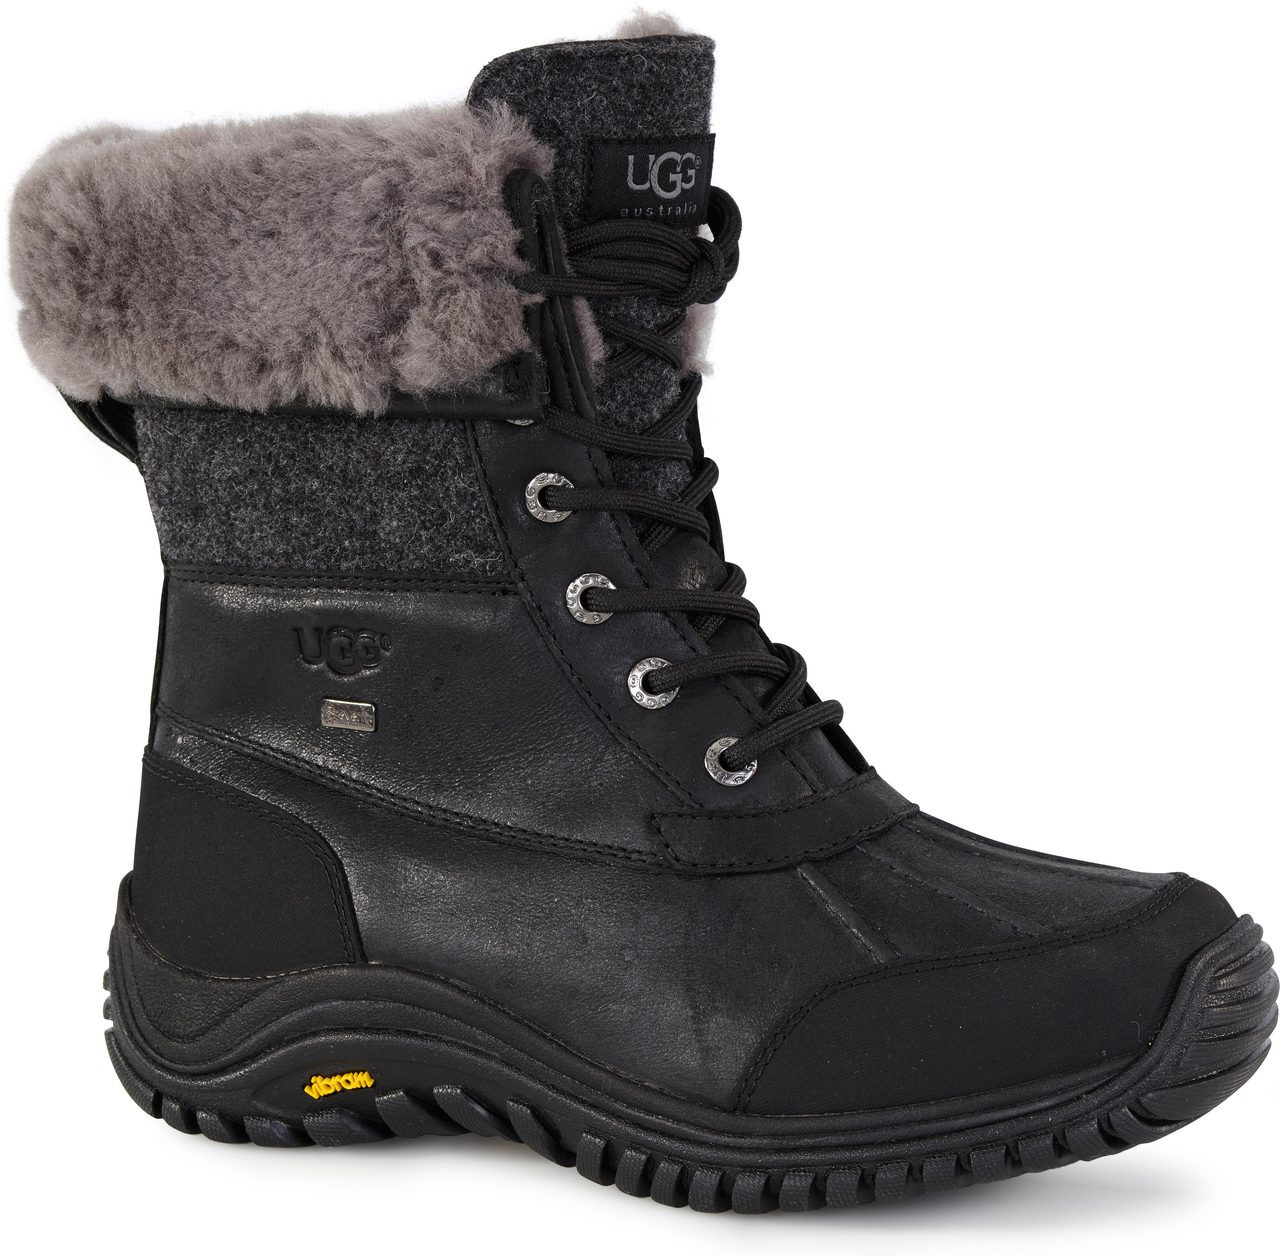 Buy UGG Women's Adirondack Tall Snow Boot and other Snow Boots at smolinwebsite.ga Our wide selection is eligible for free shipping and free returns.